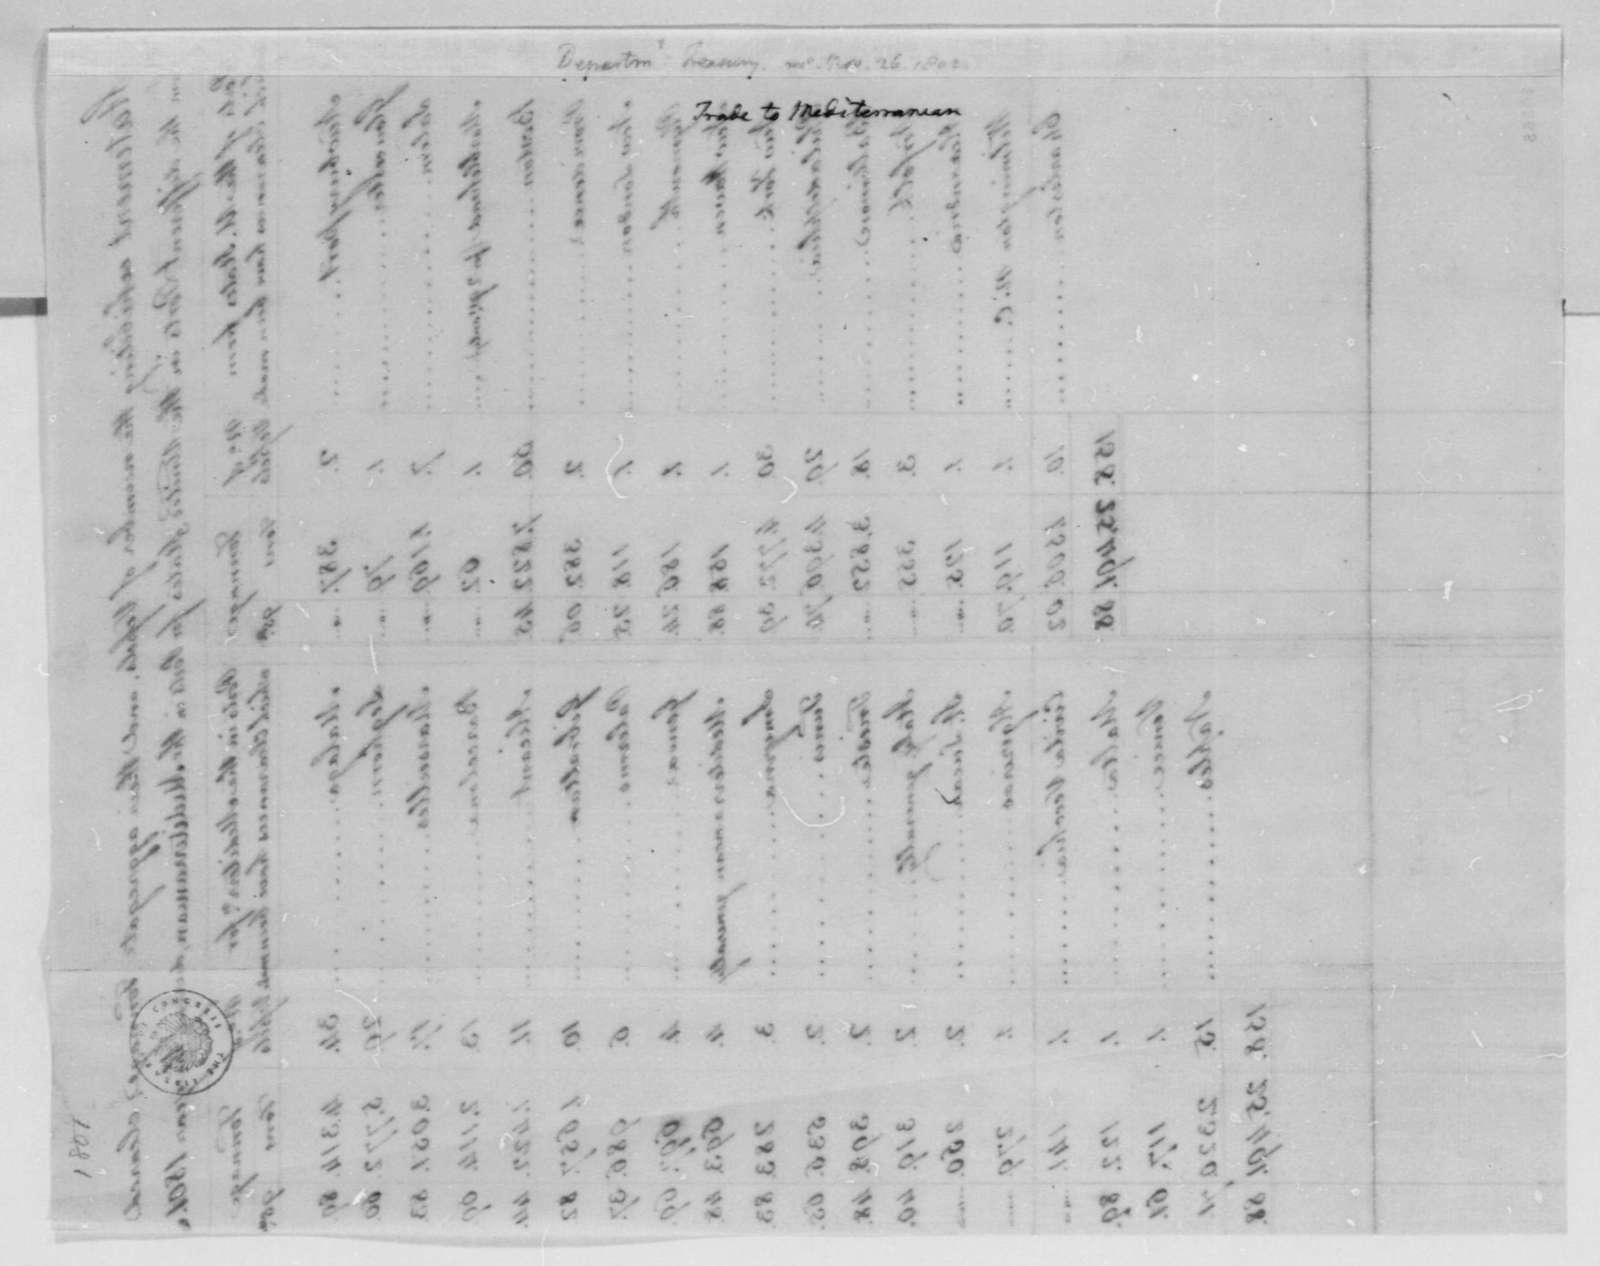 Treasury Department, November 26, 1802, Statement on Vessels and Tonnage